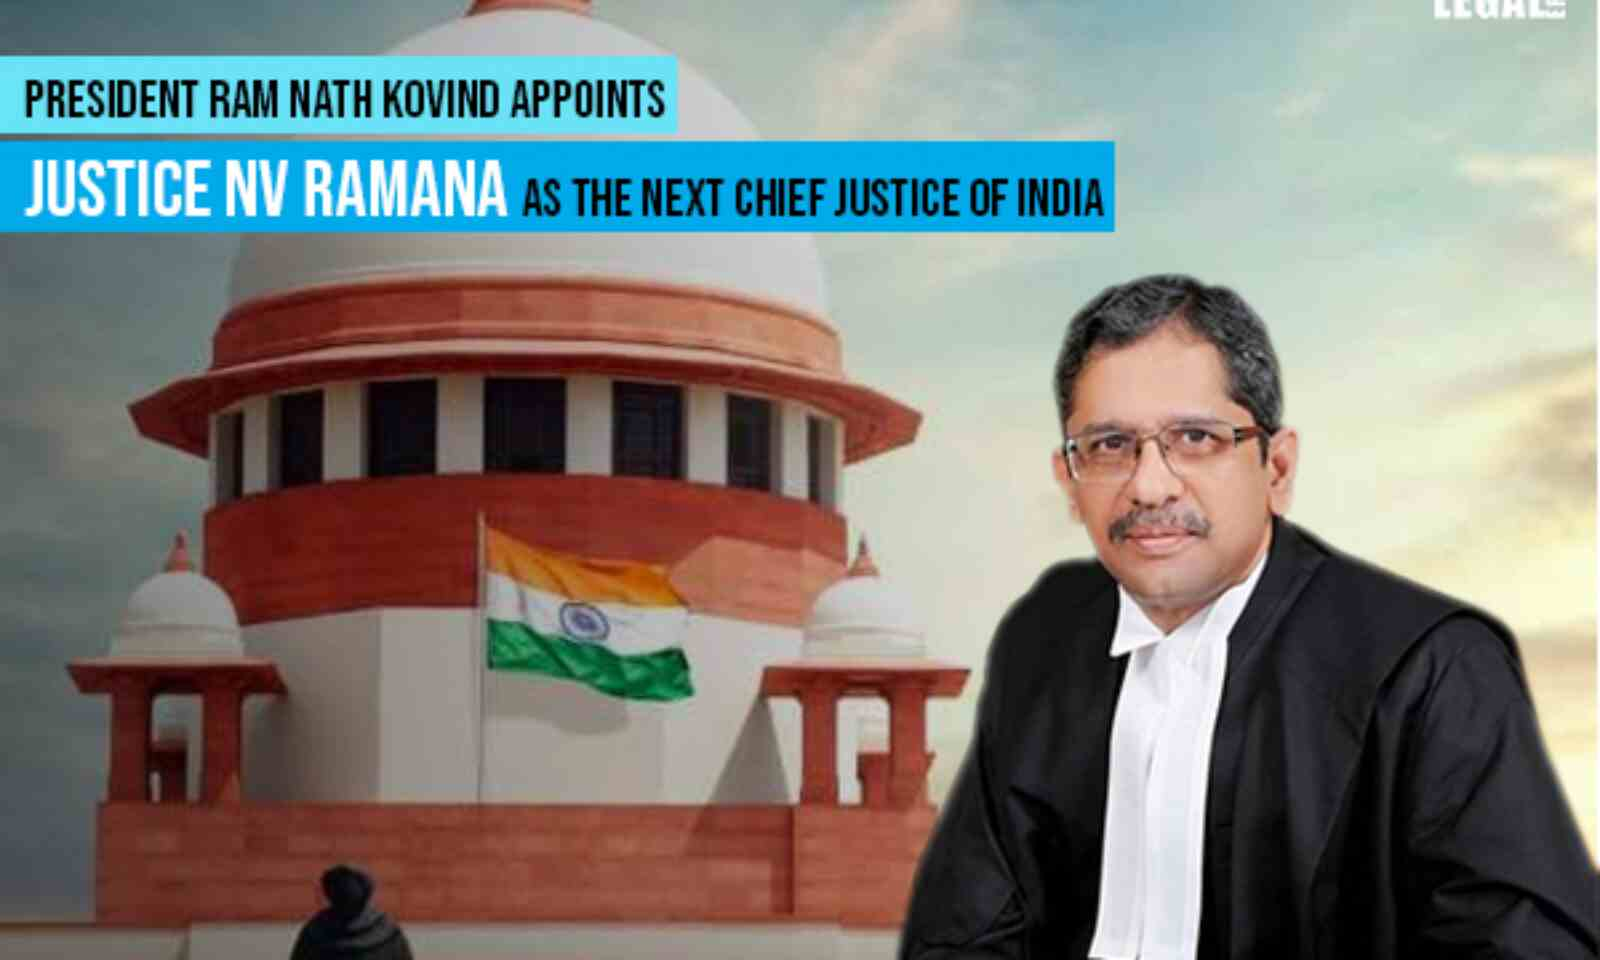 President Ram Nath Kovind appoints Justice NV Ramana as the next Chief  Justice of India